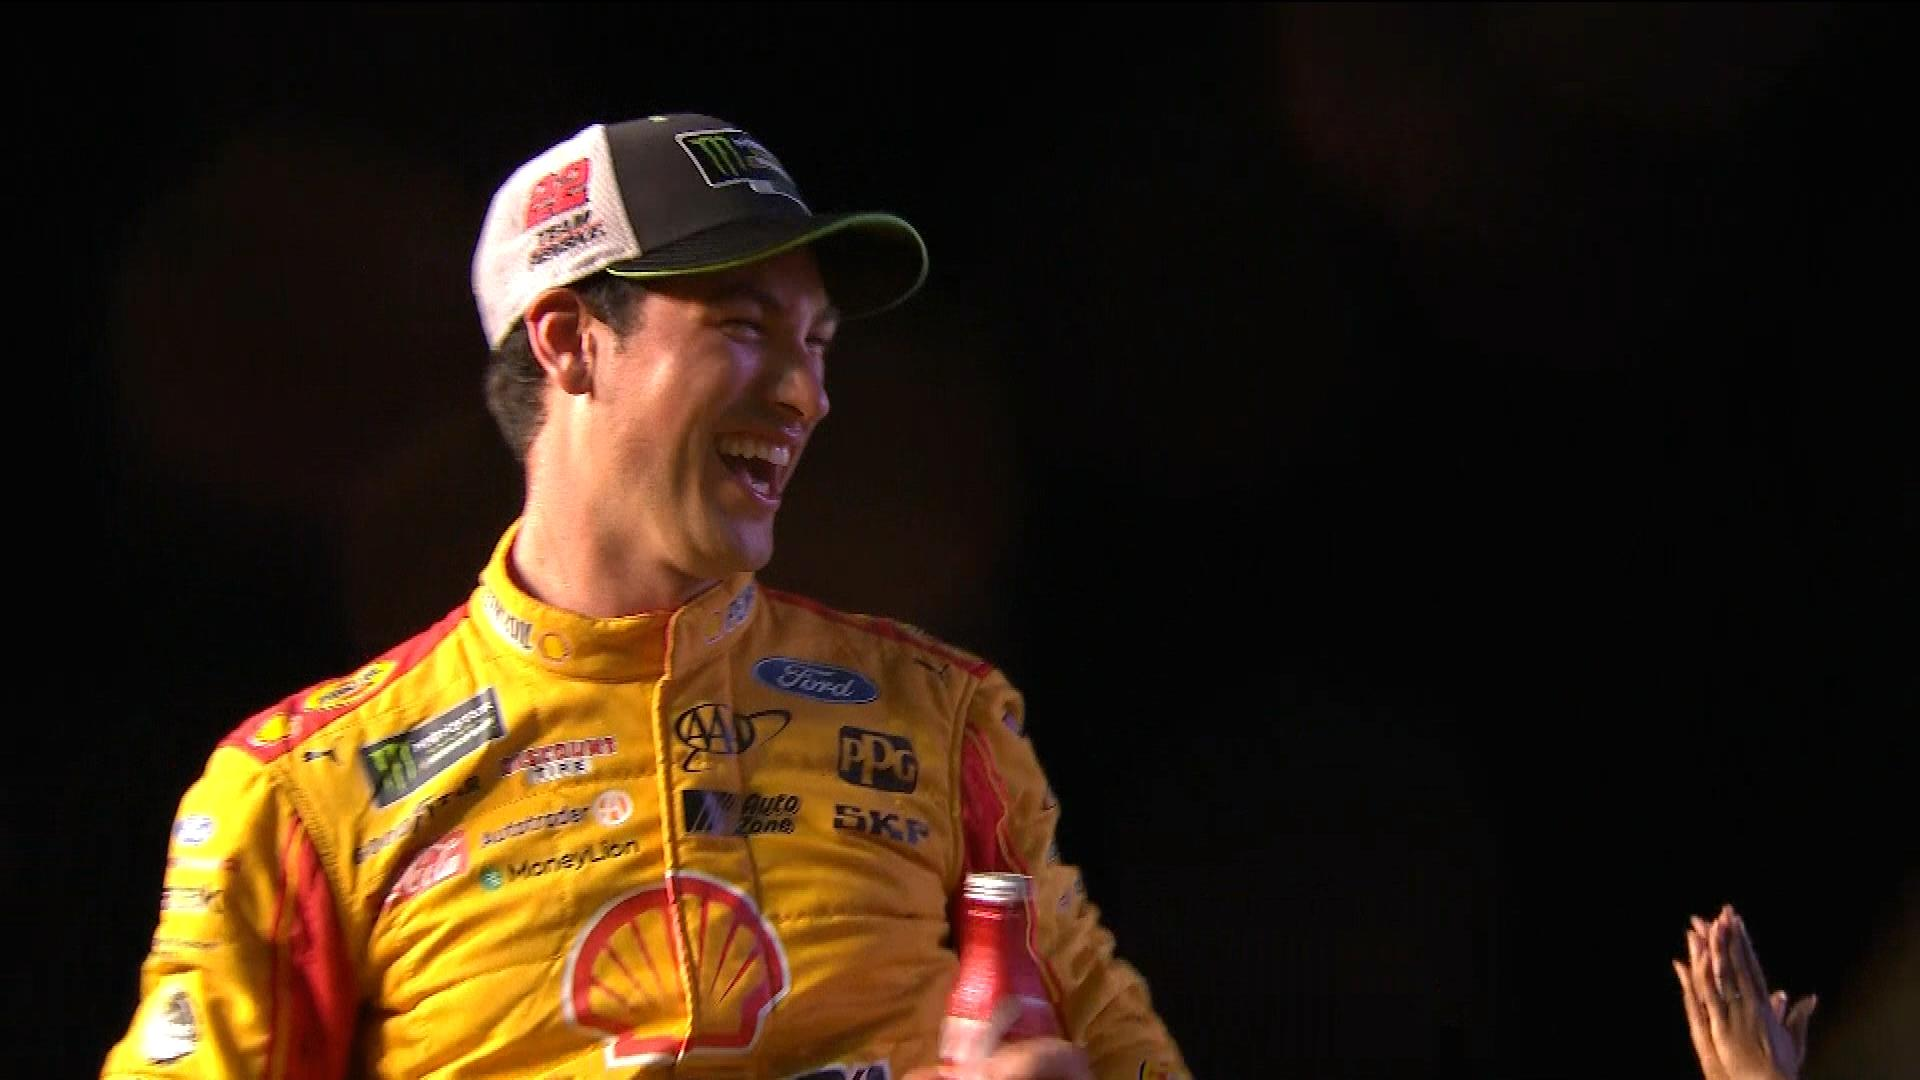 Joey Logano's NASCAR career changed with move to Team Penske